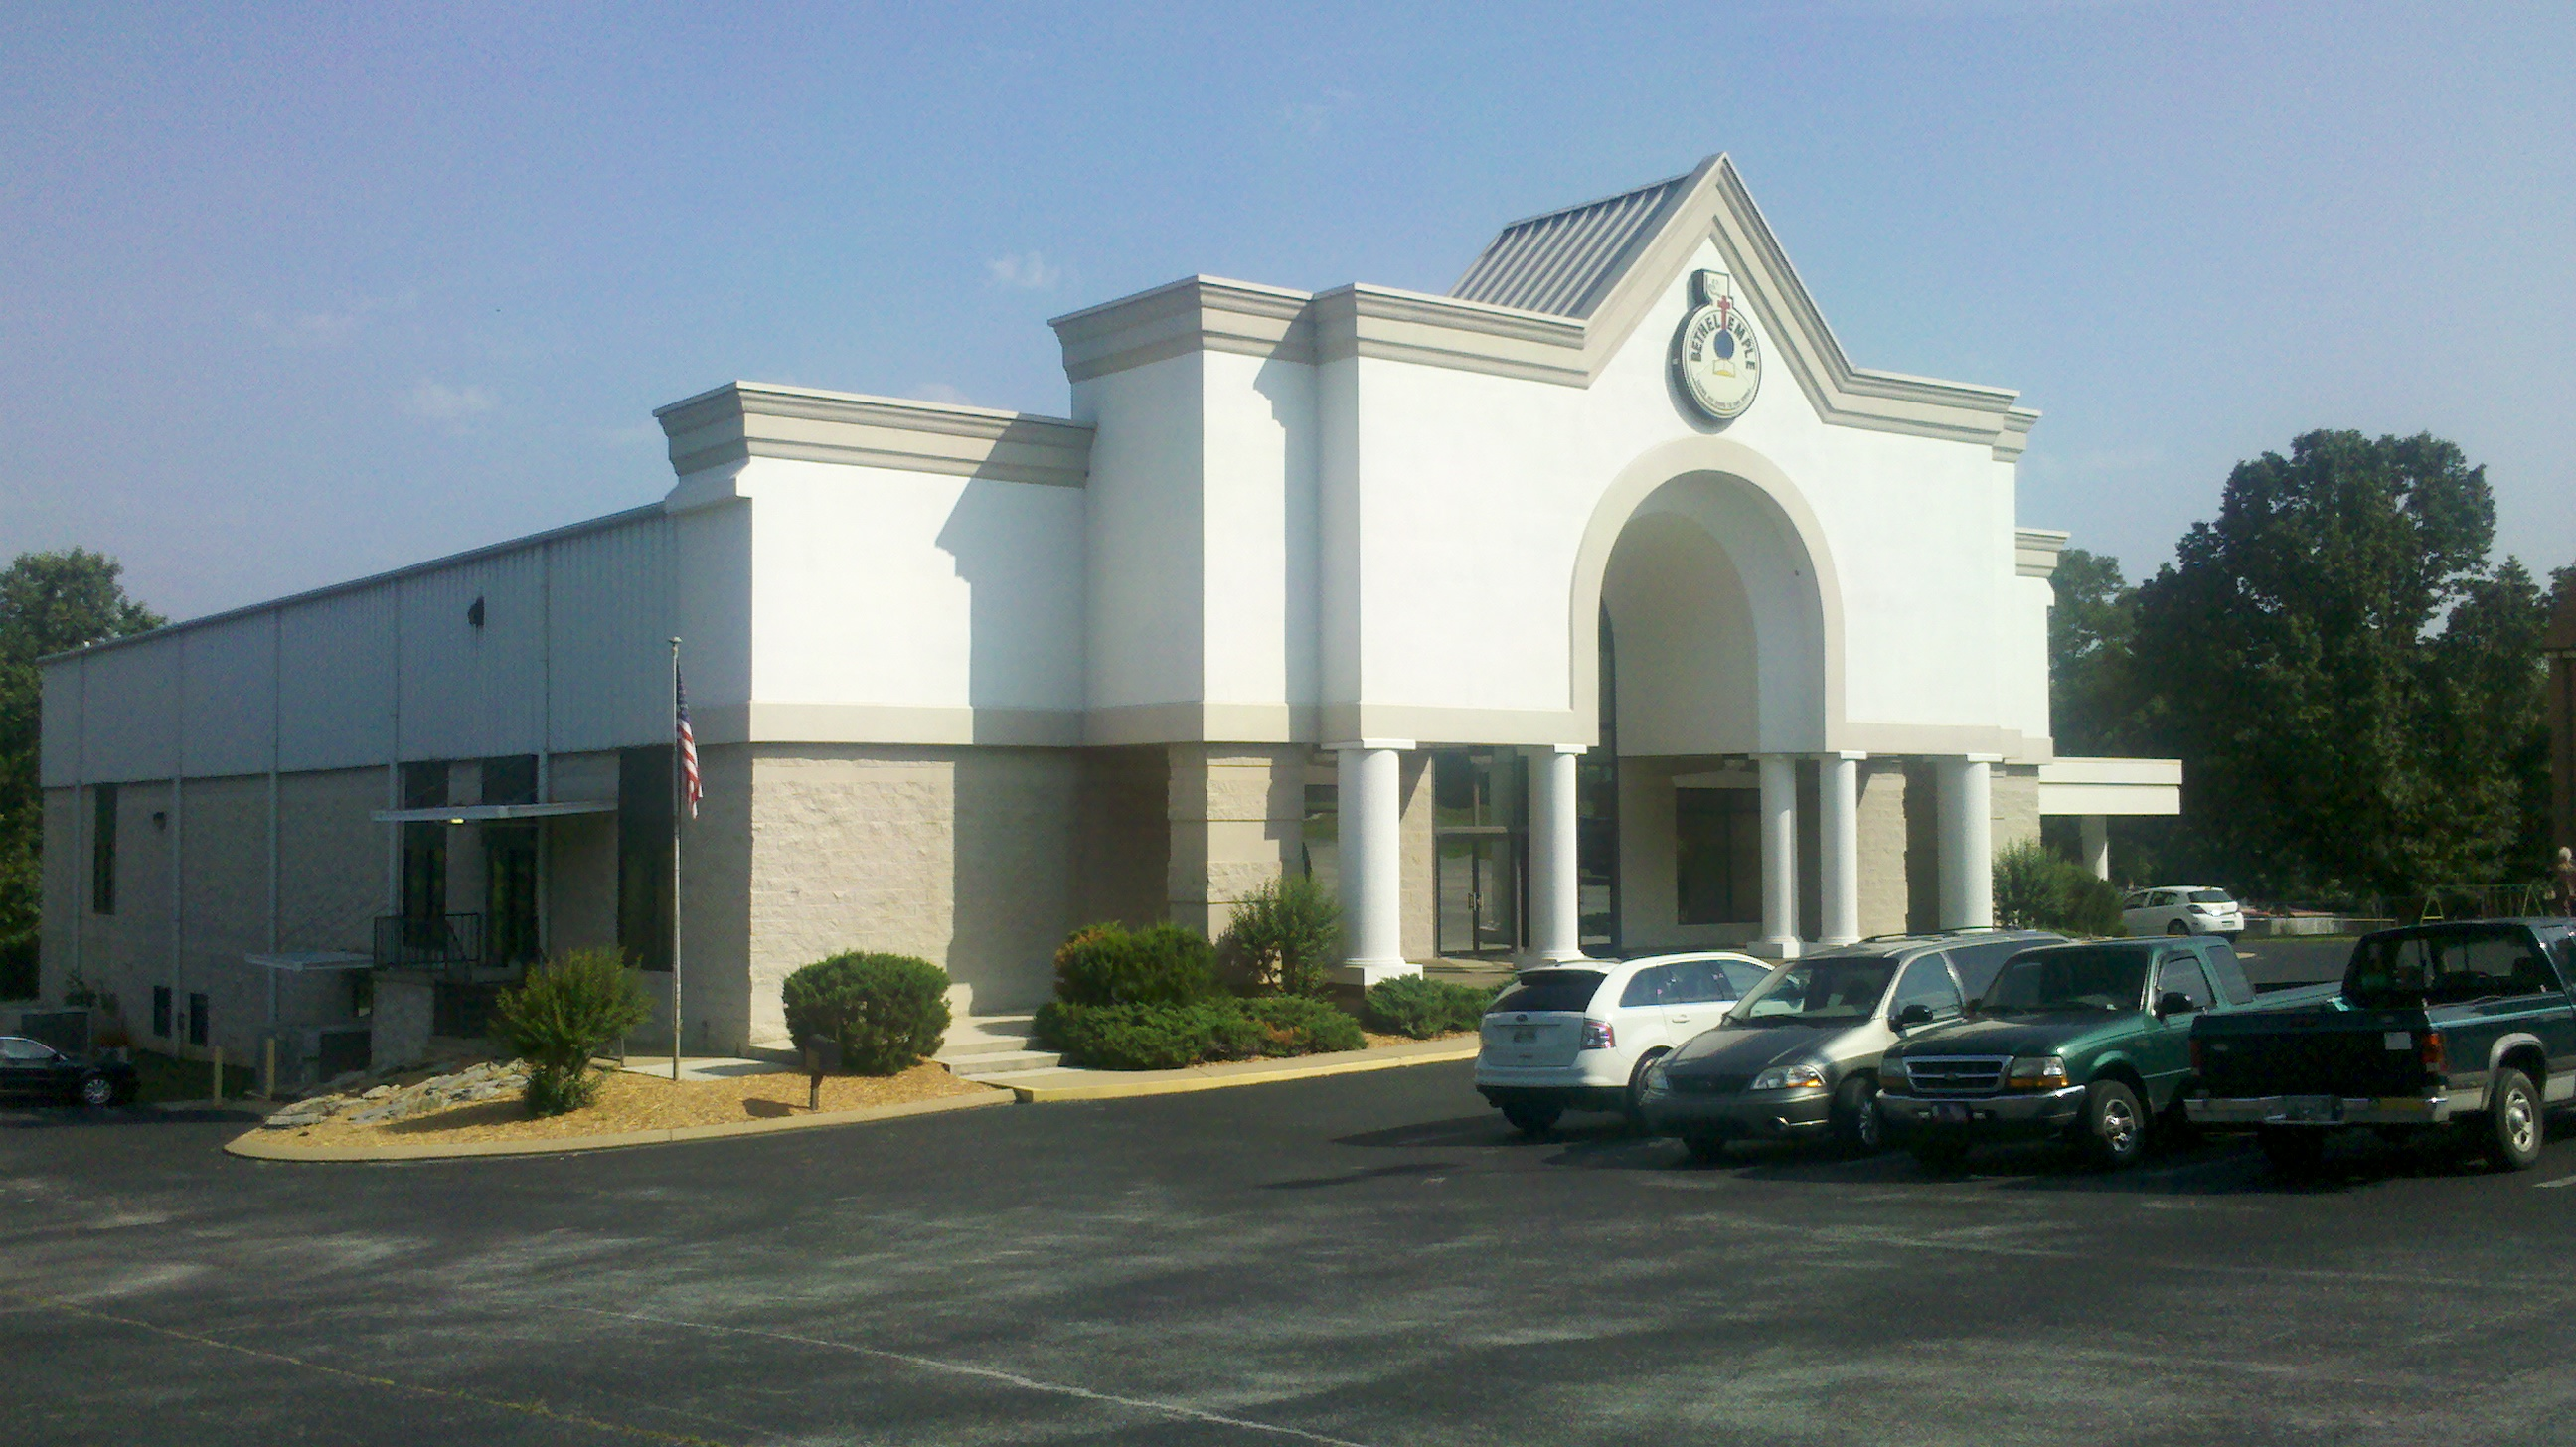 Churchsurfer bethel temple which end of the pentecostal spectrum